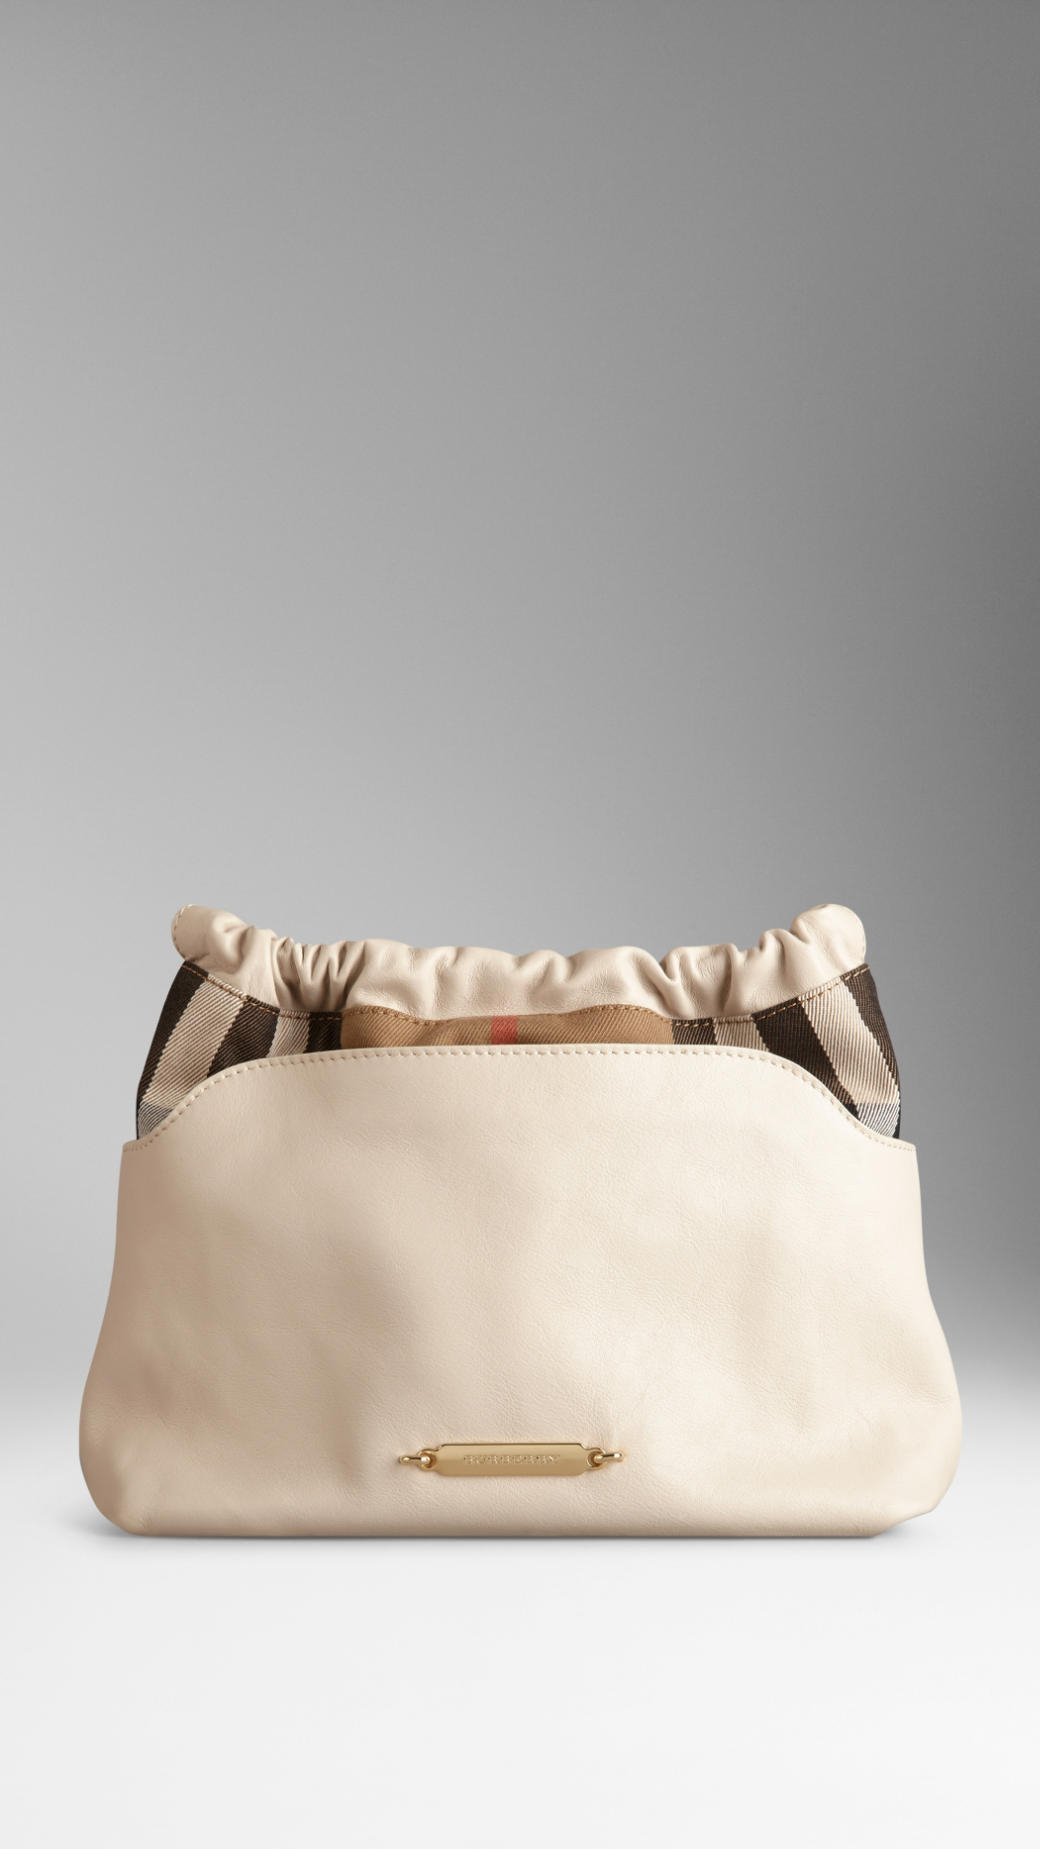 fc8d7f08b6e3 Lyst - Burberry The Little Crush in House Check and Leather in Natural